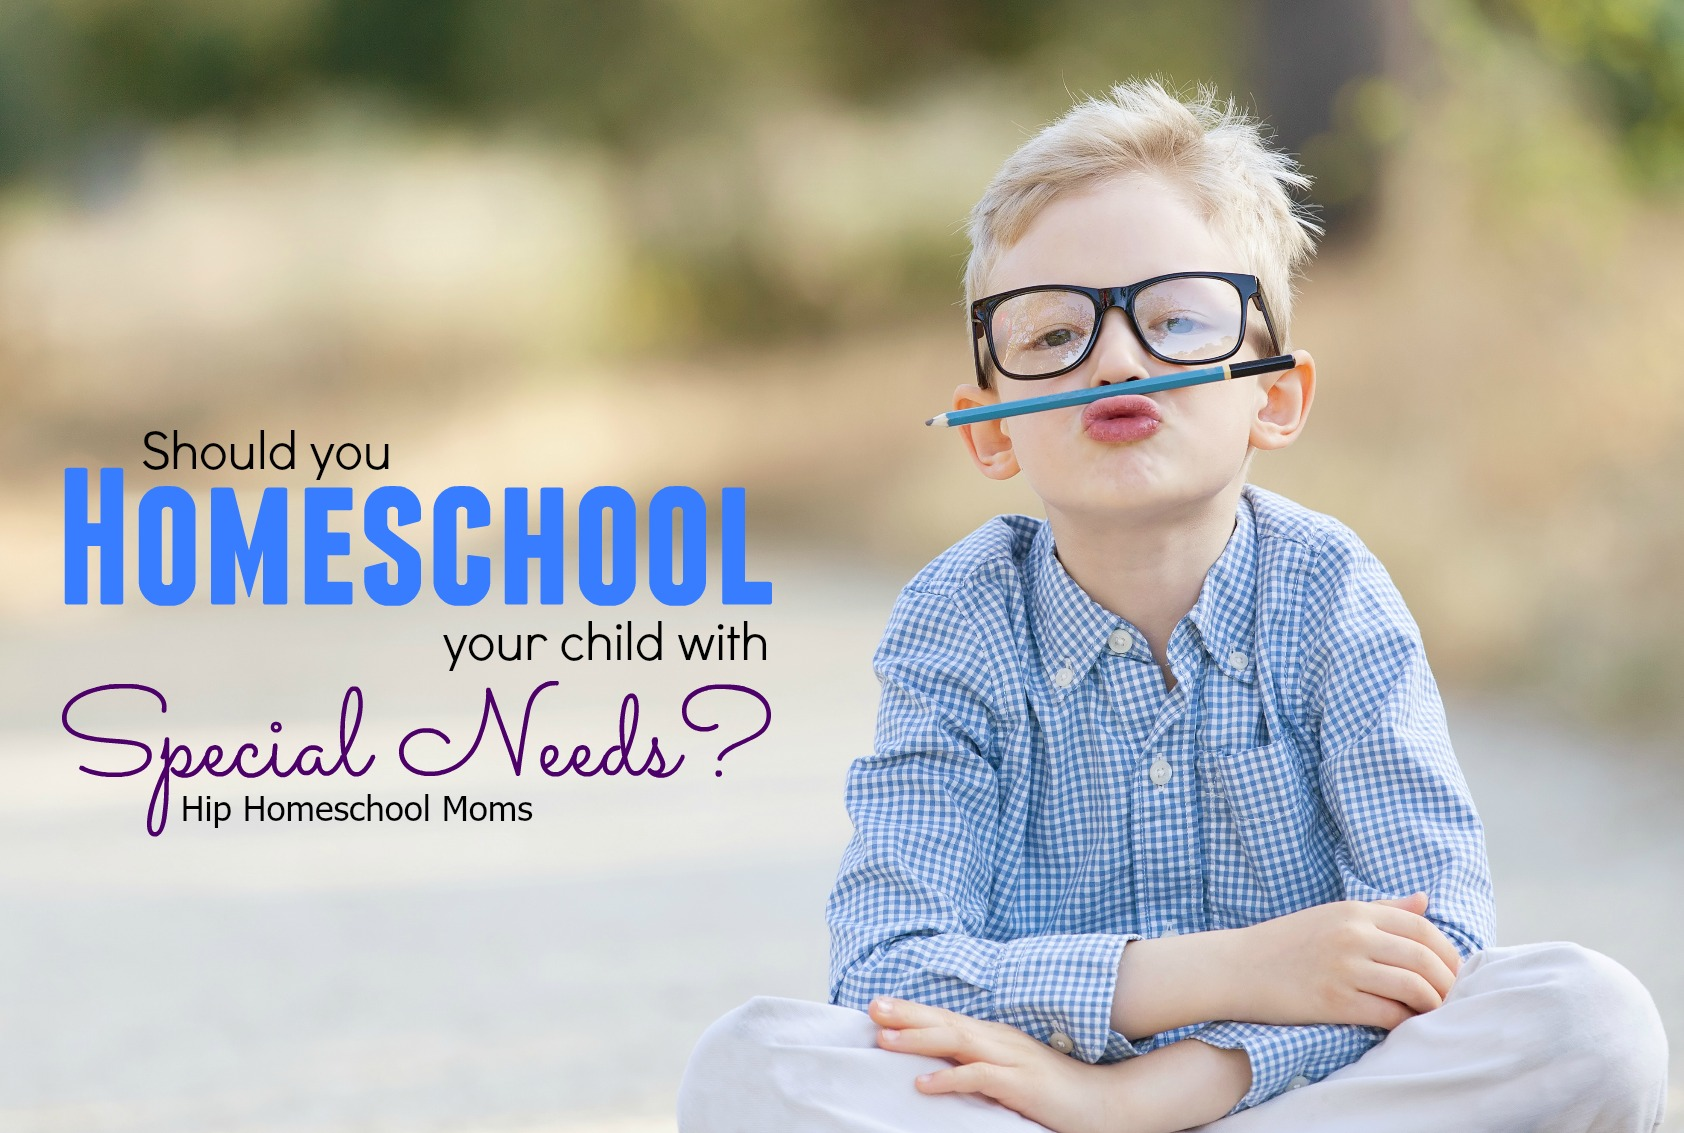 Should You Homeschool Your Special Needs Child?